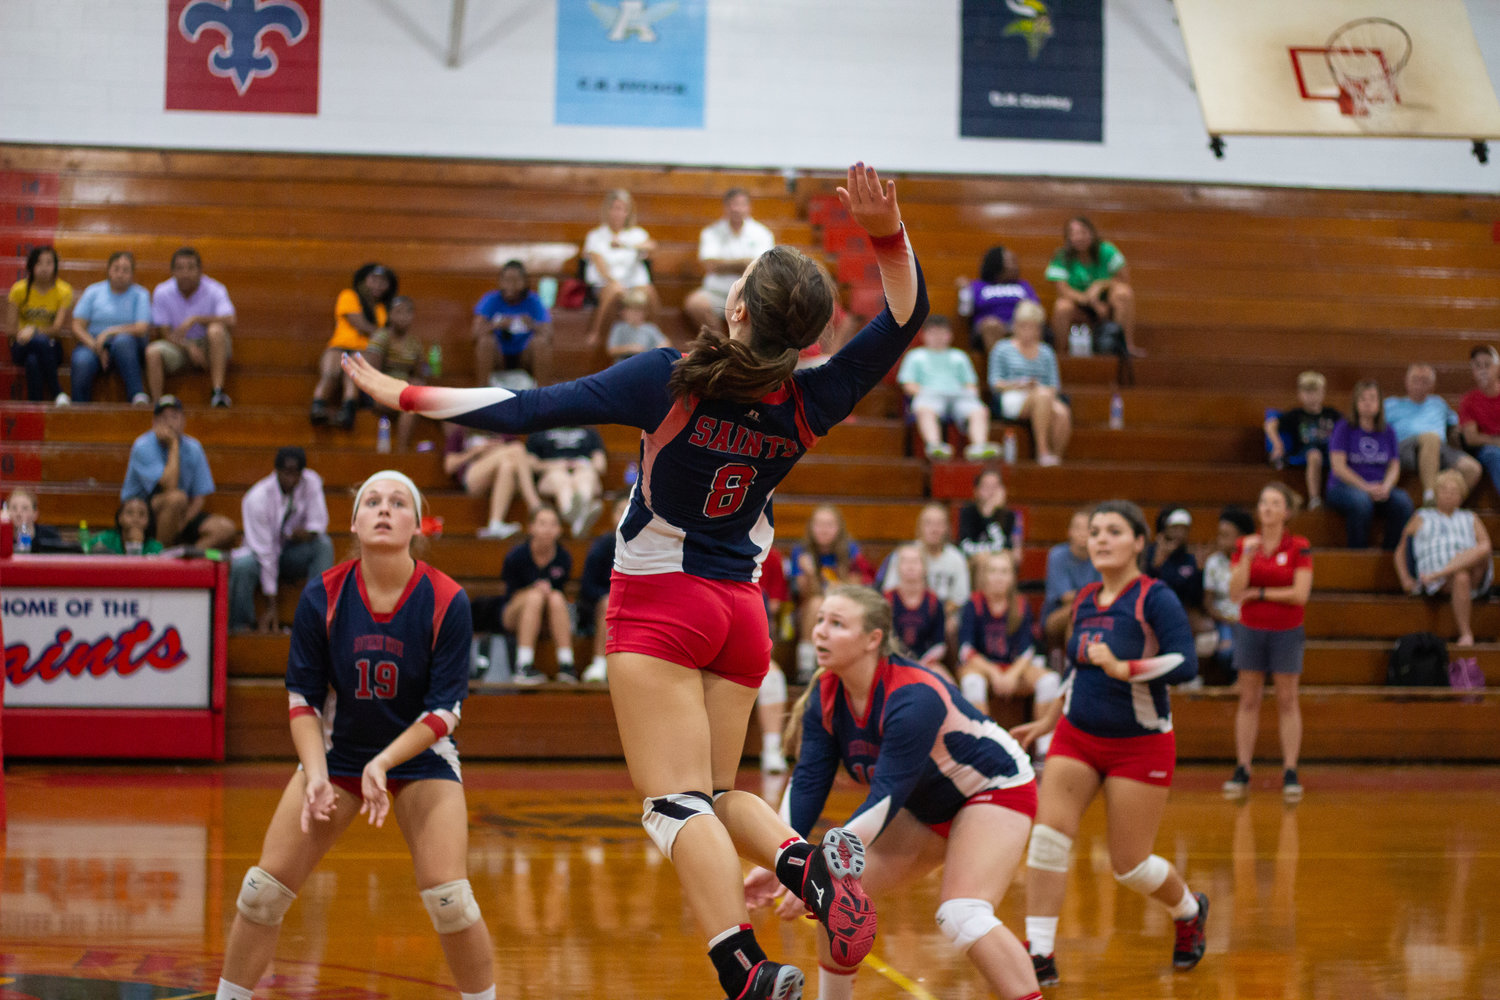 Senior Morgan Kennedy rises up to send the ball over the net in attempt to record a kill in the Saints' match against North Lenoir.